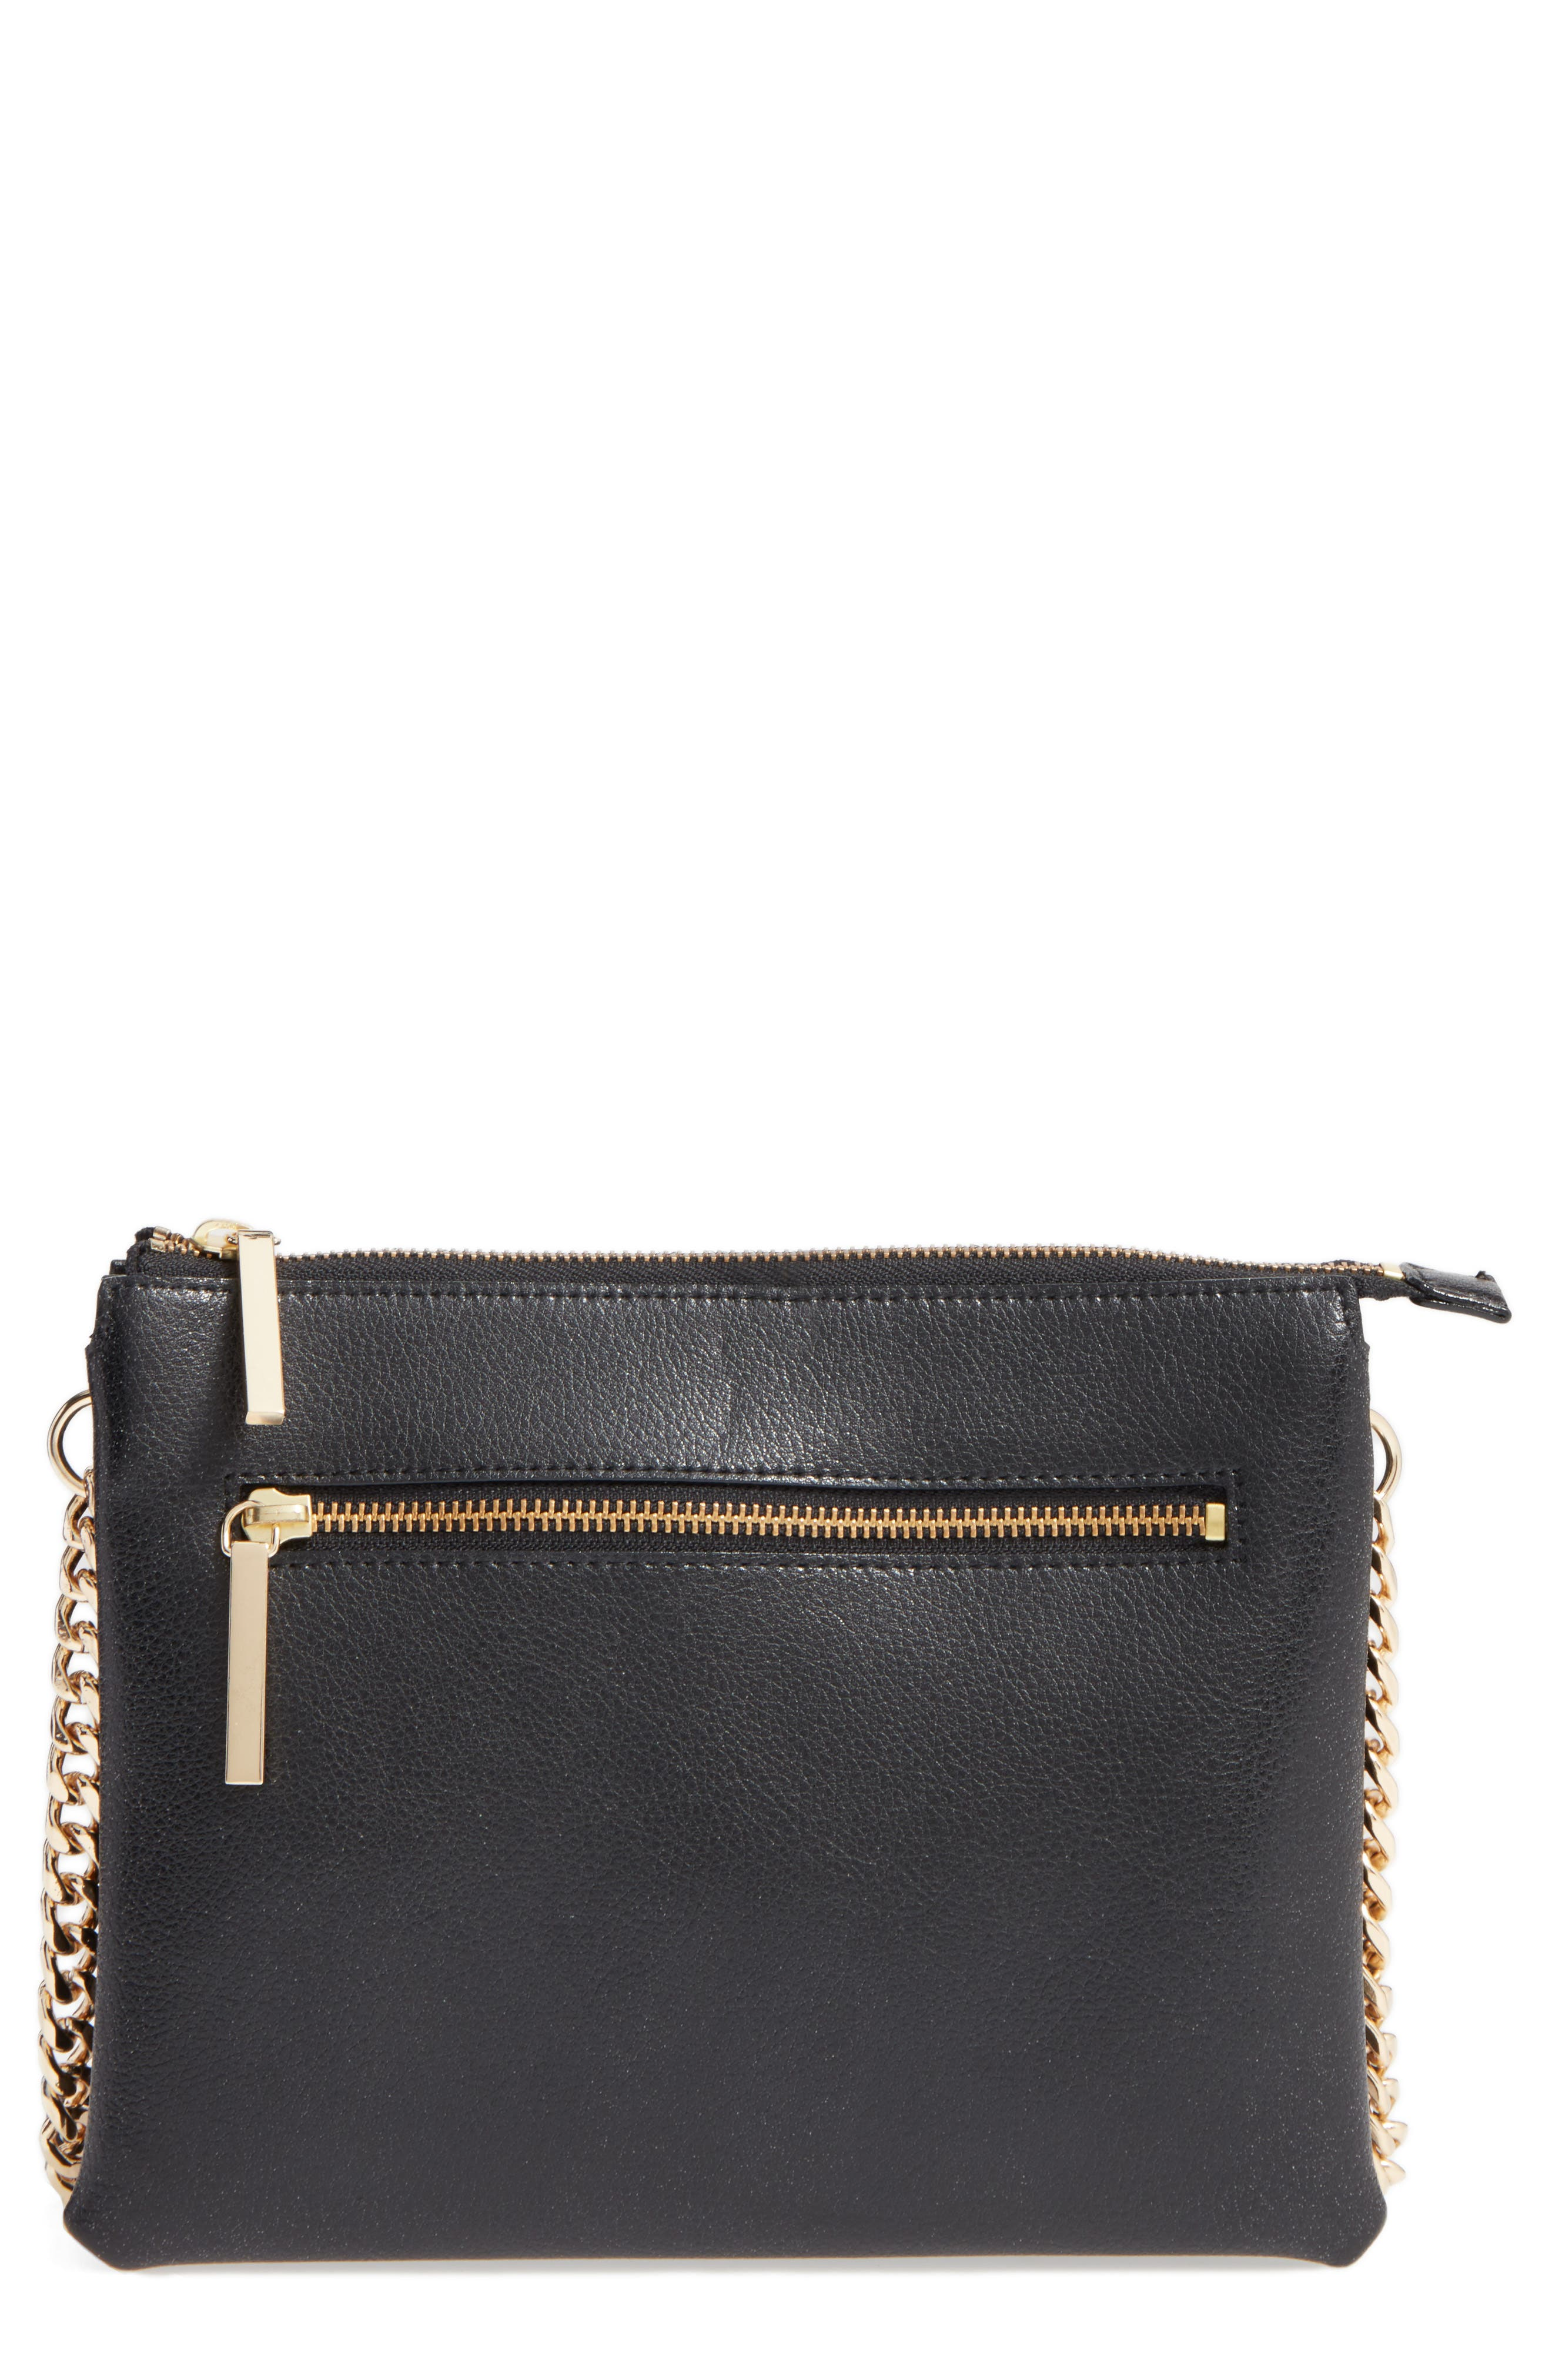 Leather Crossbody Bag,                             Main thumbnail 1, color,                             001